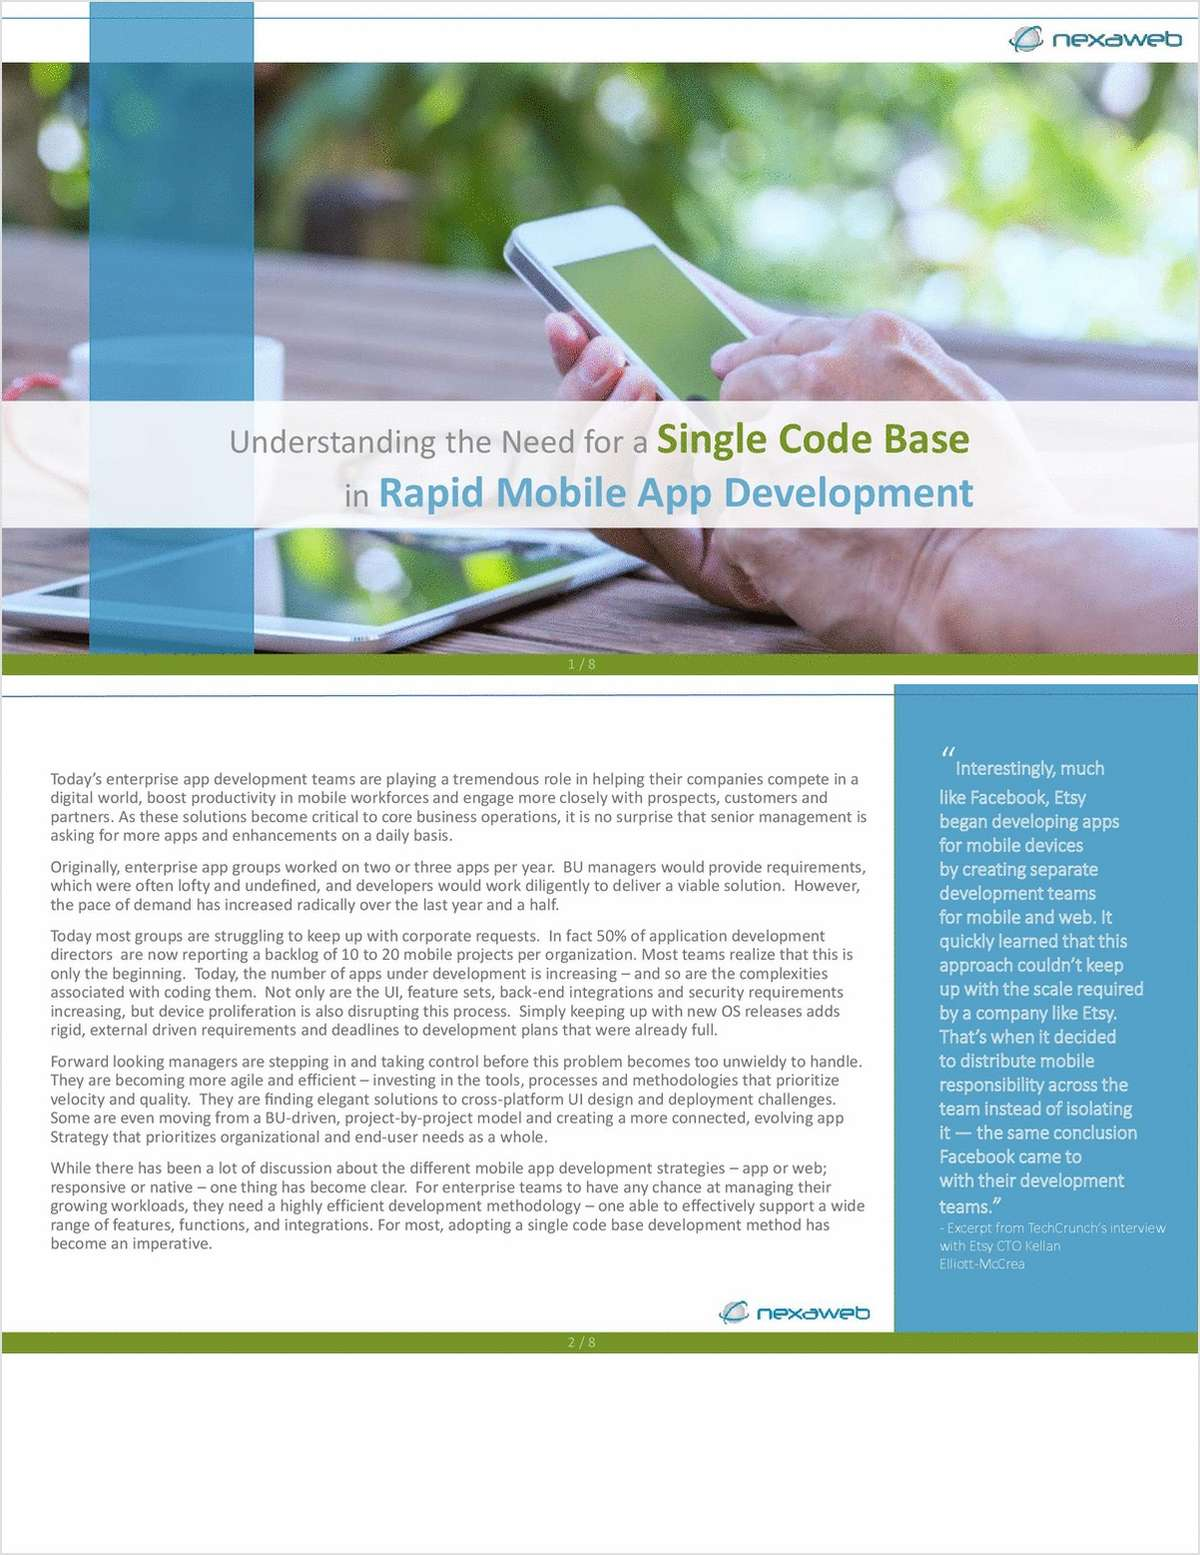 Understanding the Need for a Single Code Base in Mobile App Development